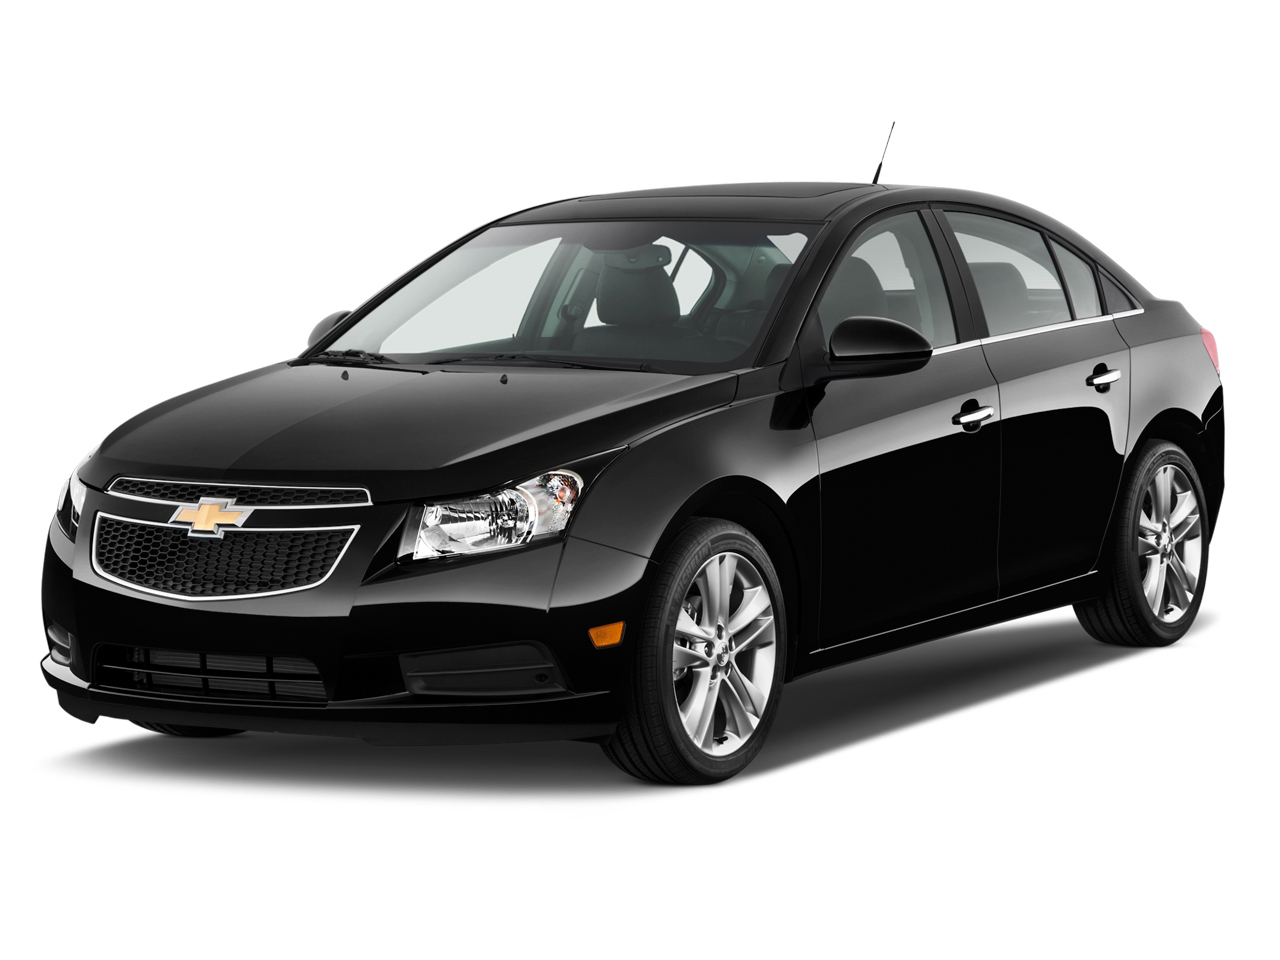 2012 Chevrolet Cruze Chevy Review Ratings Specs